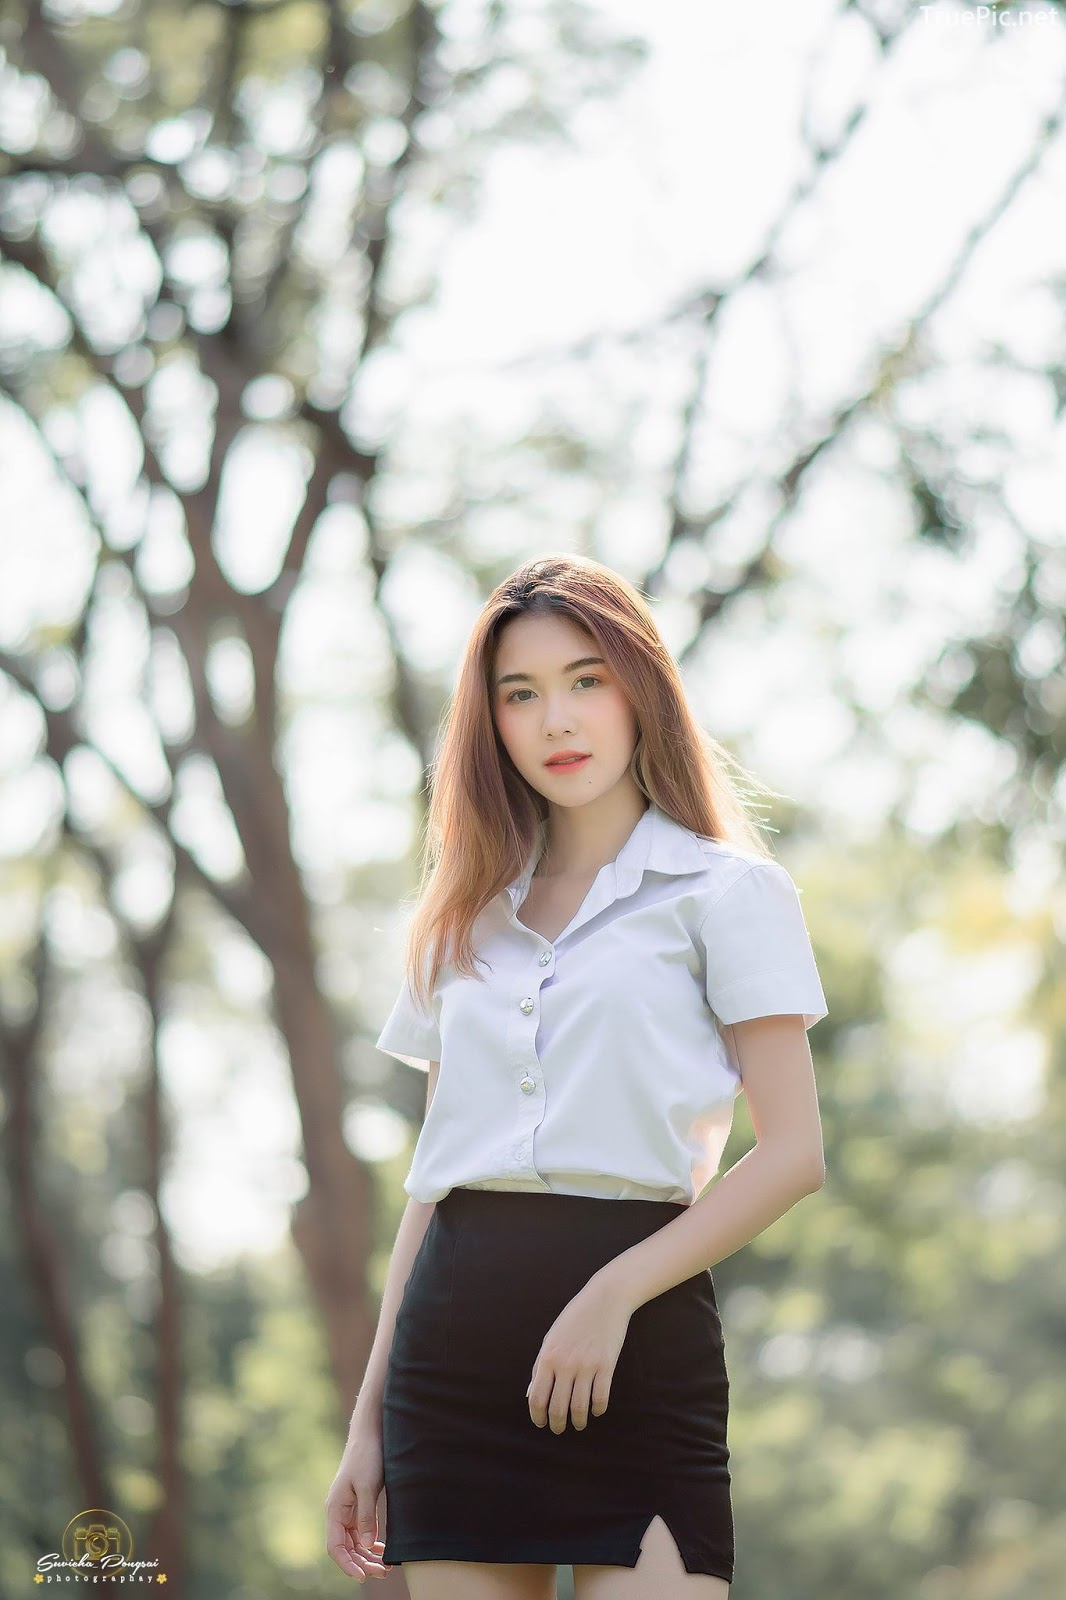 Image-Hot-Girl-Thailand-Pitcha-Srisattabuth-Cute-Student-With-a-Sweet-Smile-TruePic.net- Picture-2